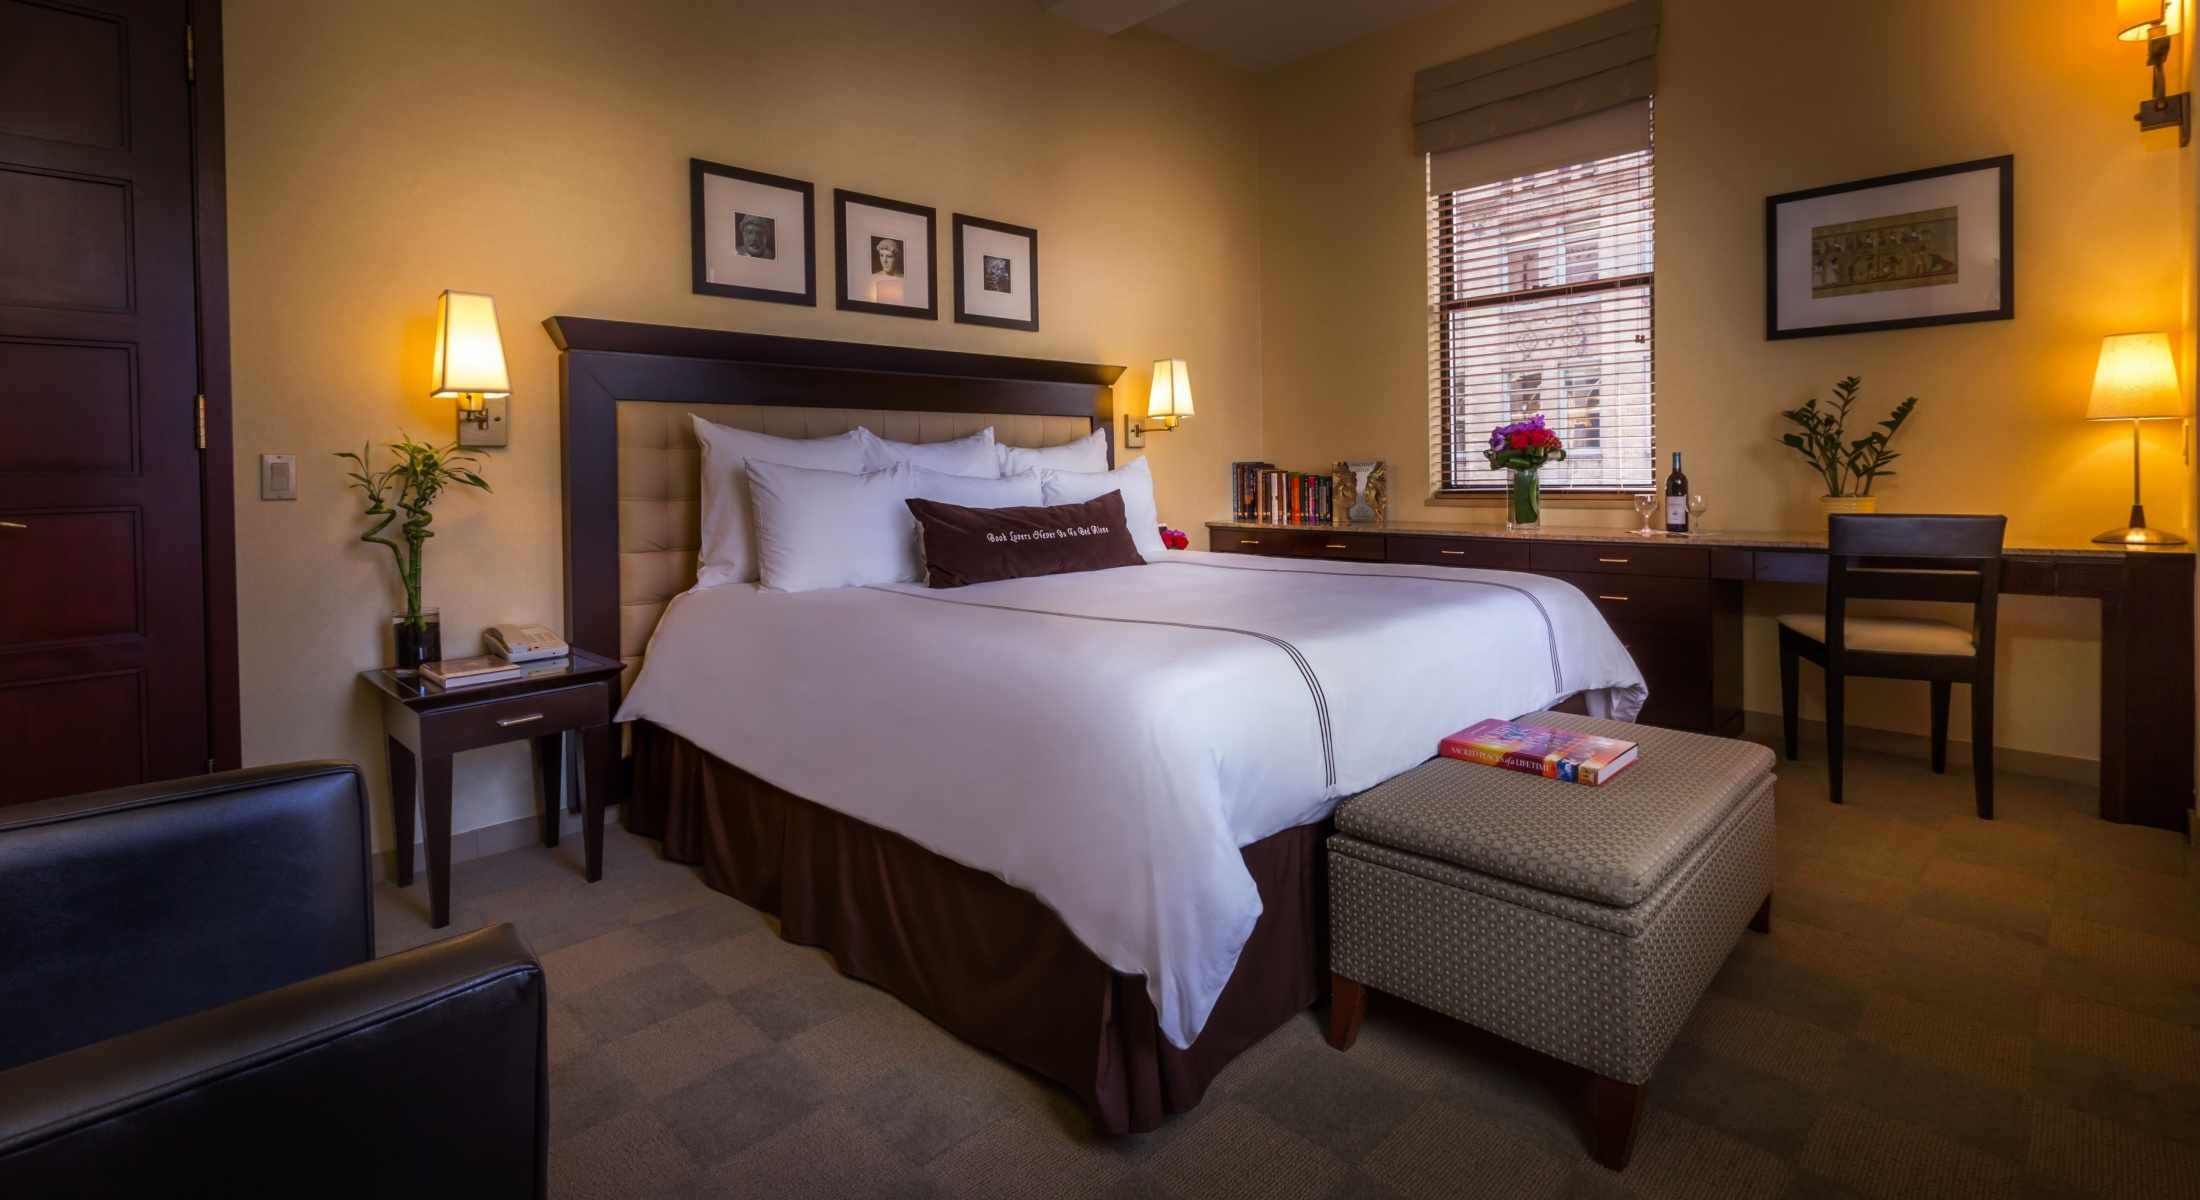 The Mythology Room features a King Bed and a large desk perfect for couples or a long stay.